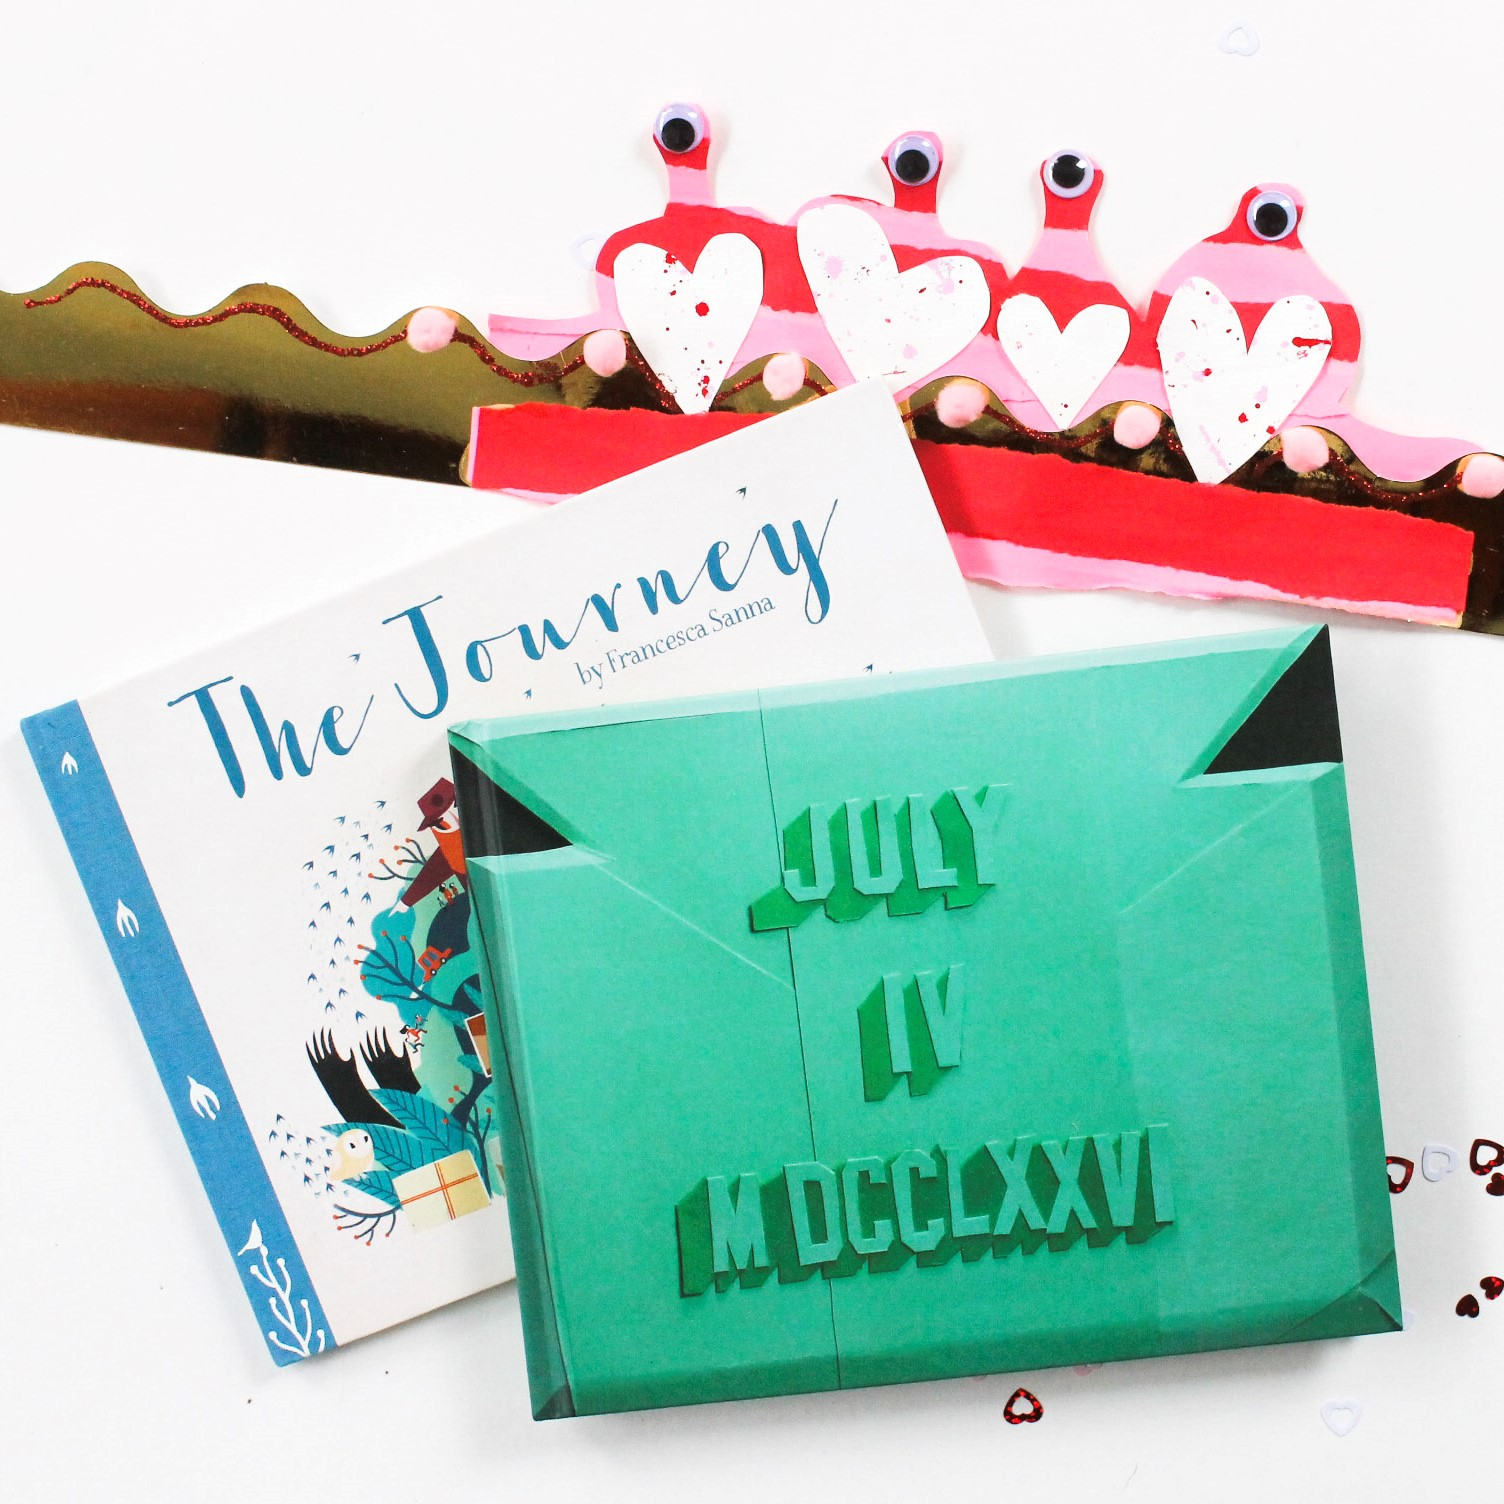 her-right-foot-childrens-kidlit-picture-books-equality-refugees-love-liberty.jpg